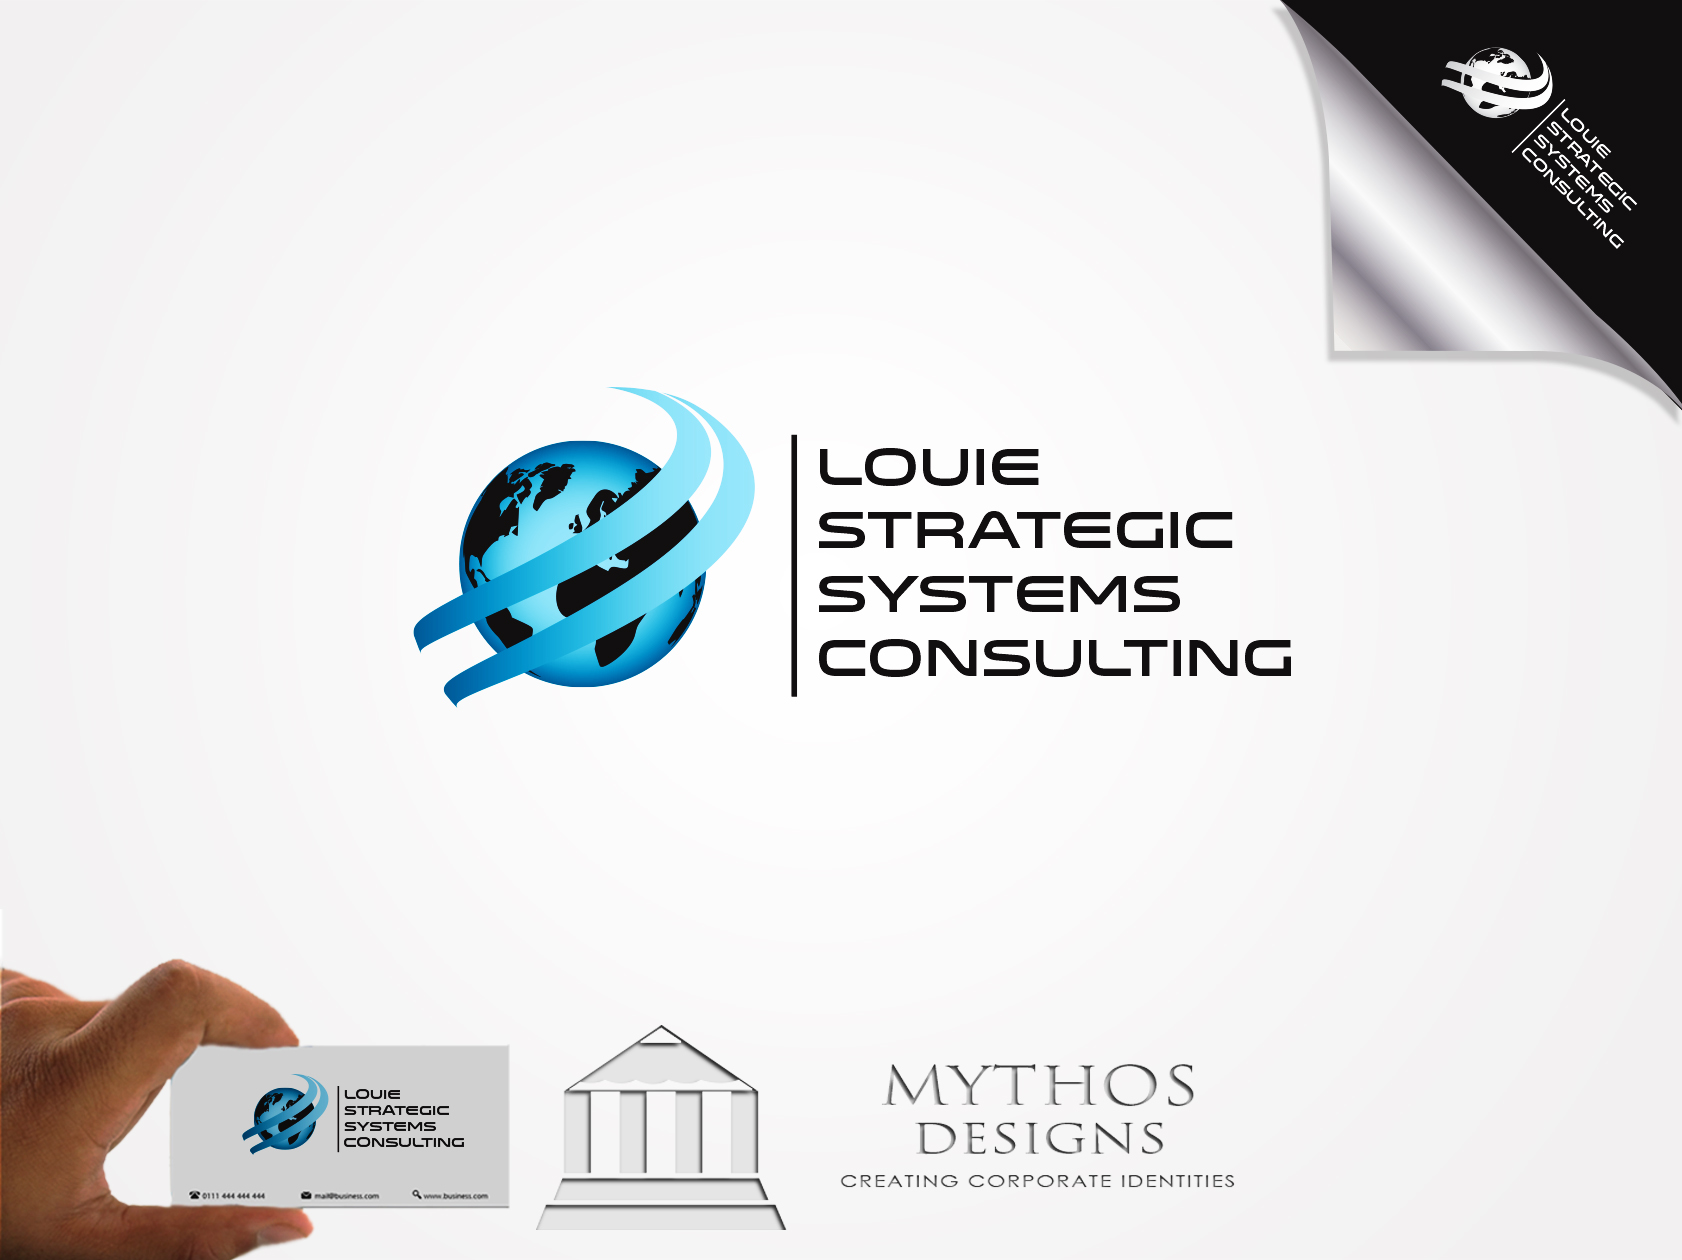 Logo Design by Mythos Designs - Entry No. 56 in the Logo Design Contest Artistic Logo Design for Louie Strategic Systems Consulting.